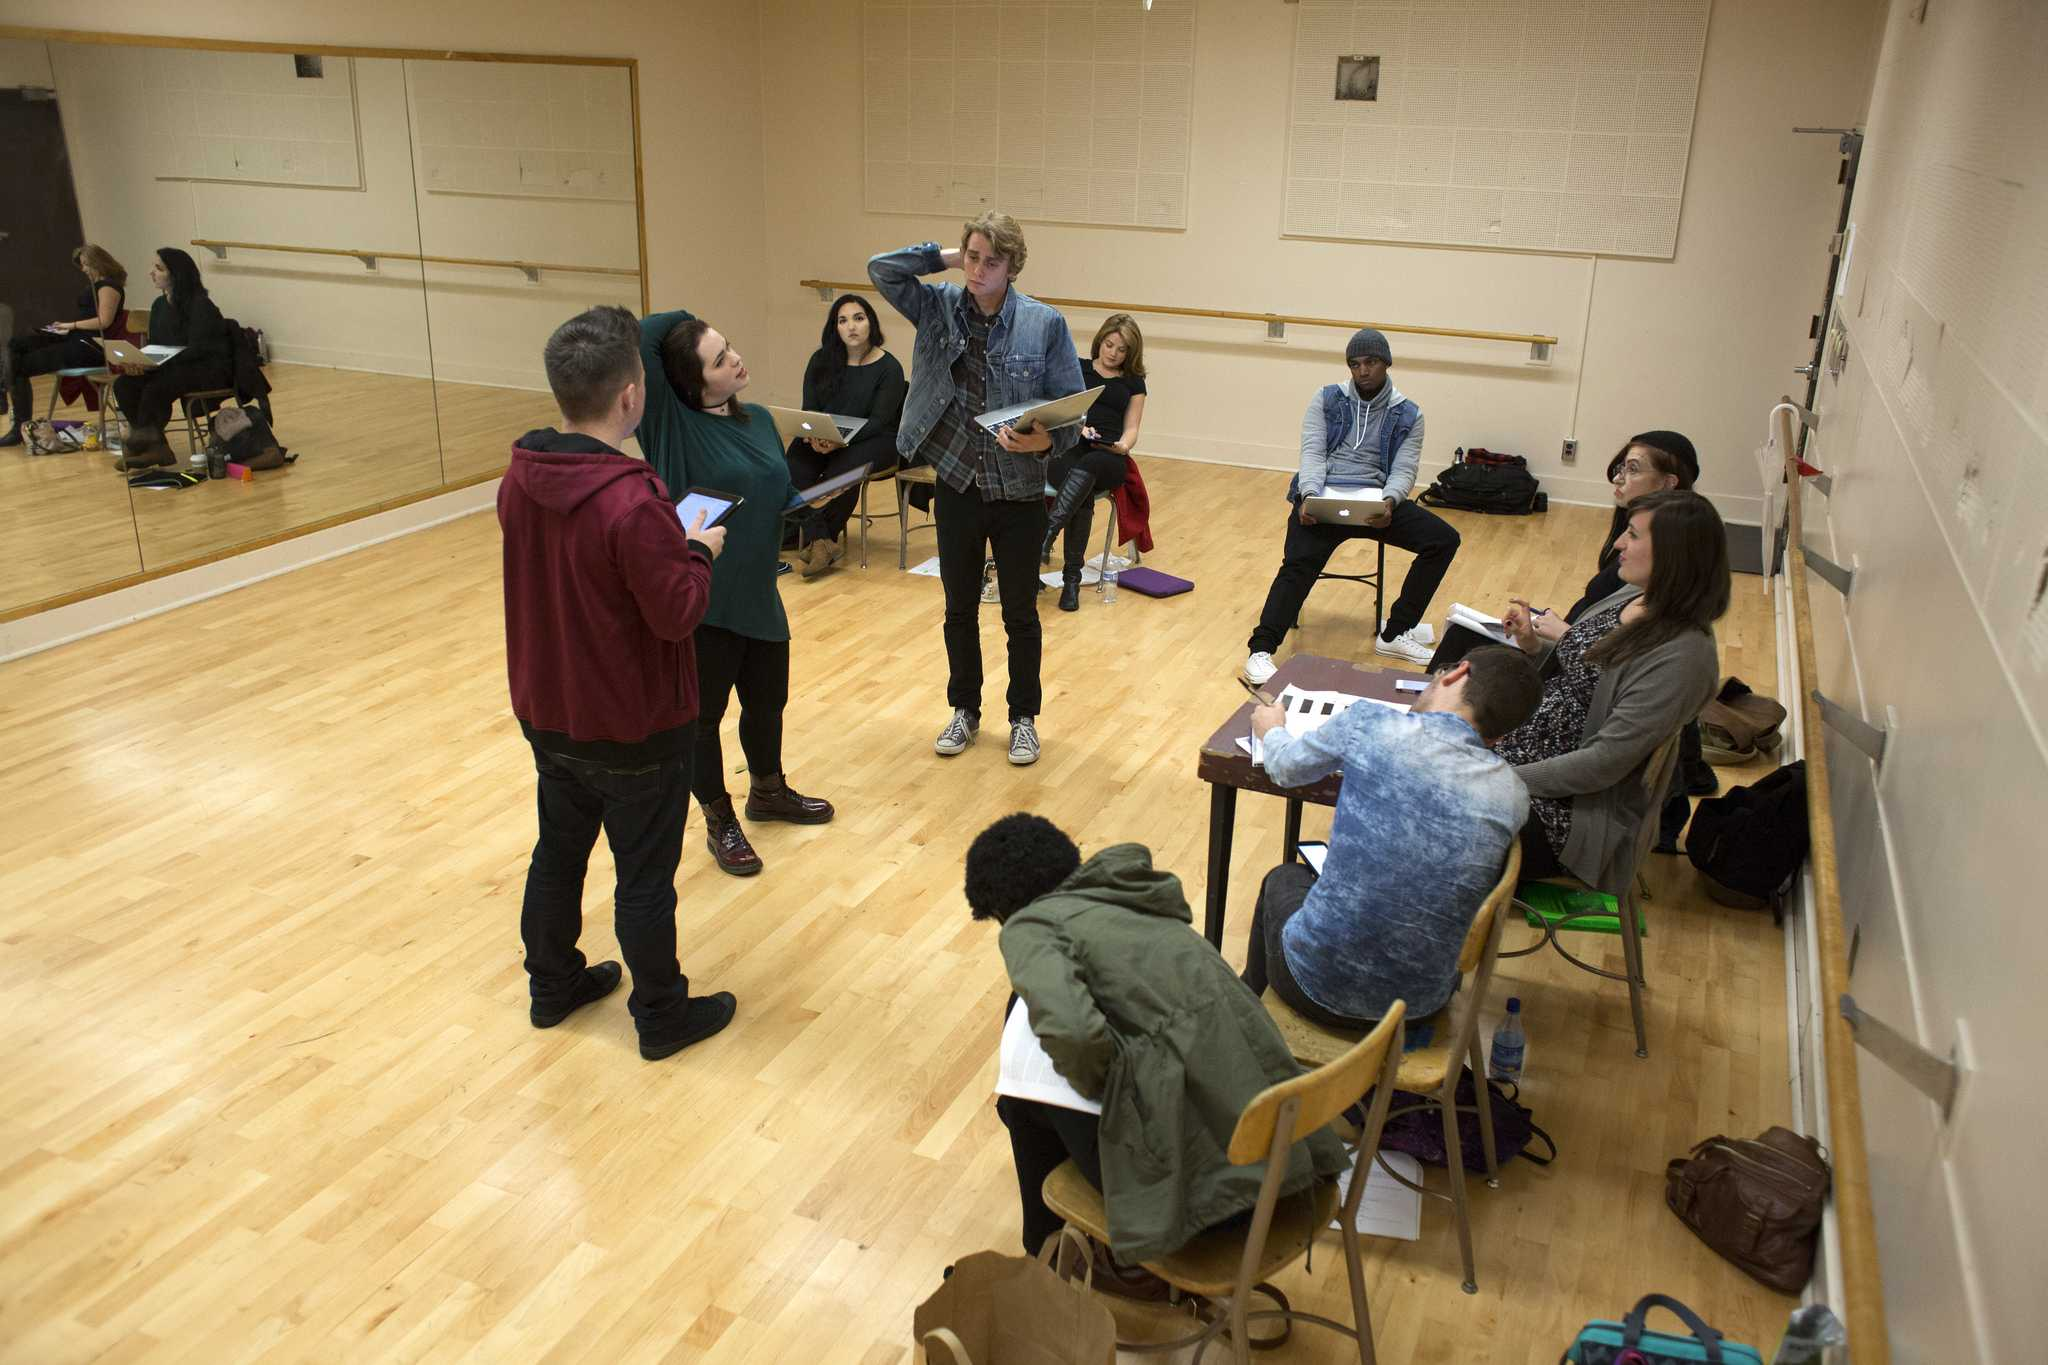 Students rehearse for the play Absinthe Green in the creative arts building at SF State on Monday, Sept. 14, 2015. (Ryan McNulty / Xpress)